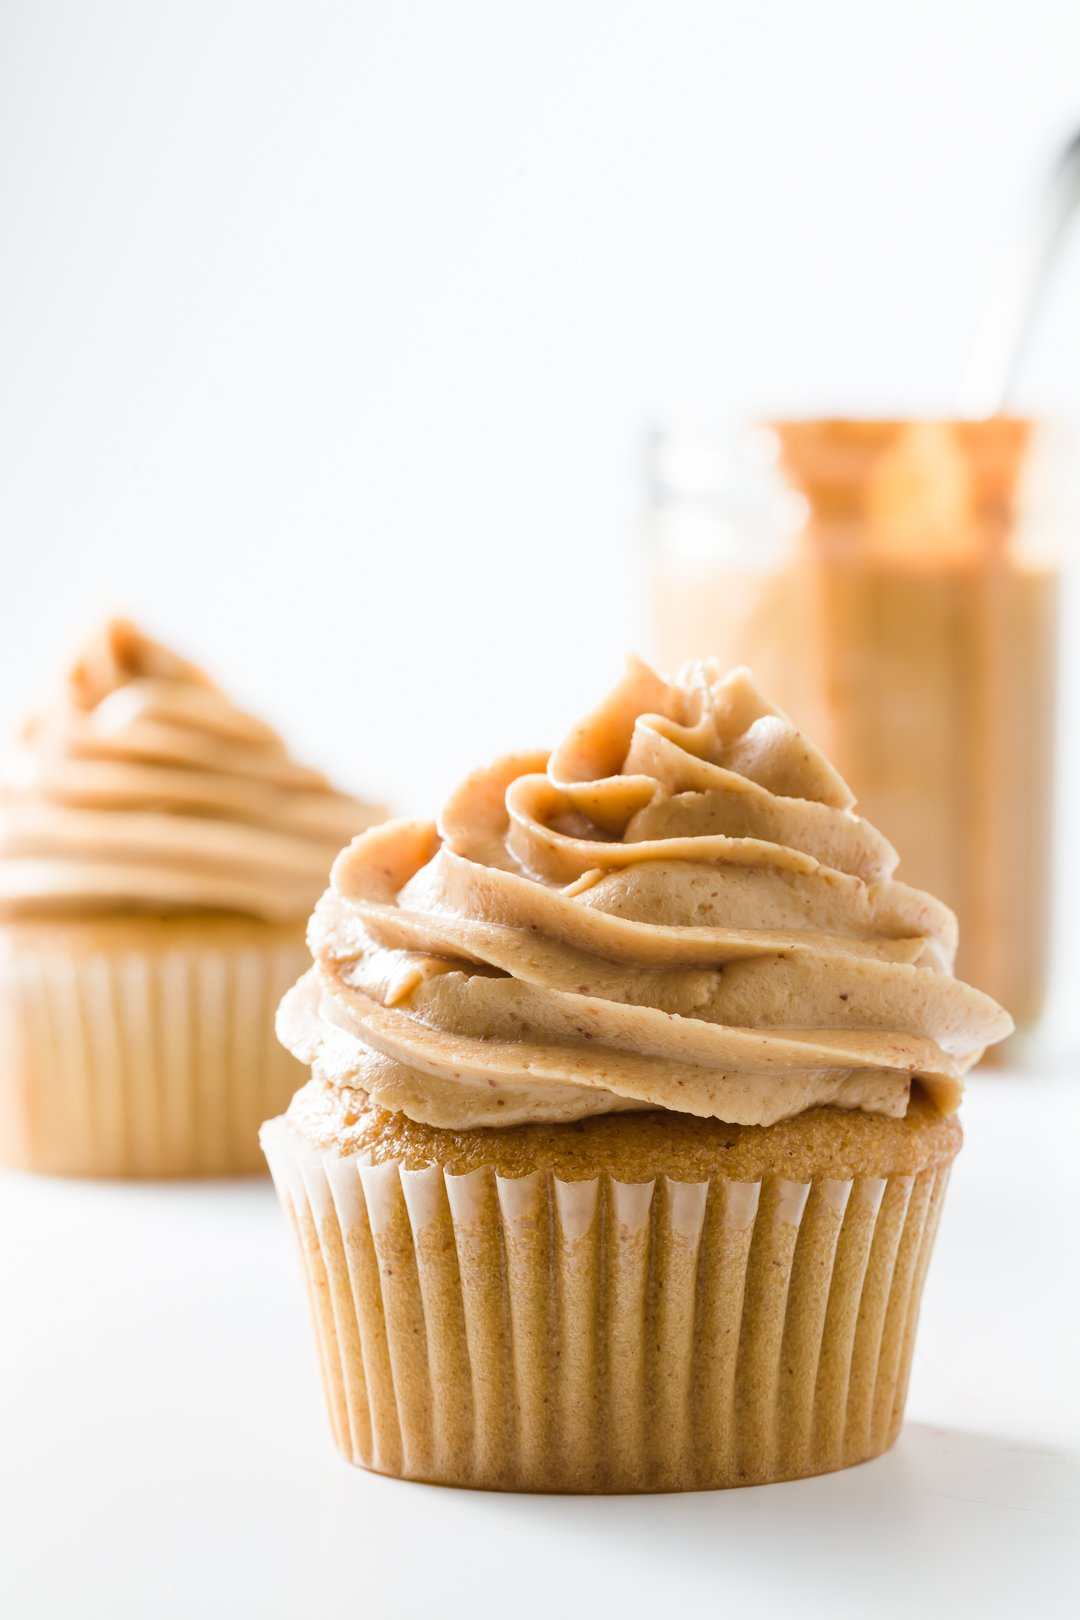 Peanut butter frosting on peanut butter cupcakes